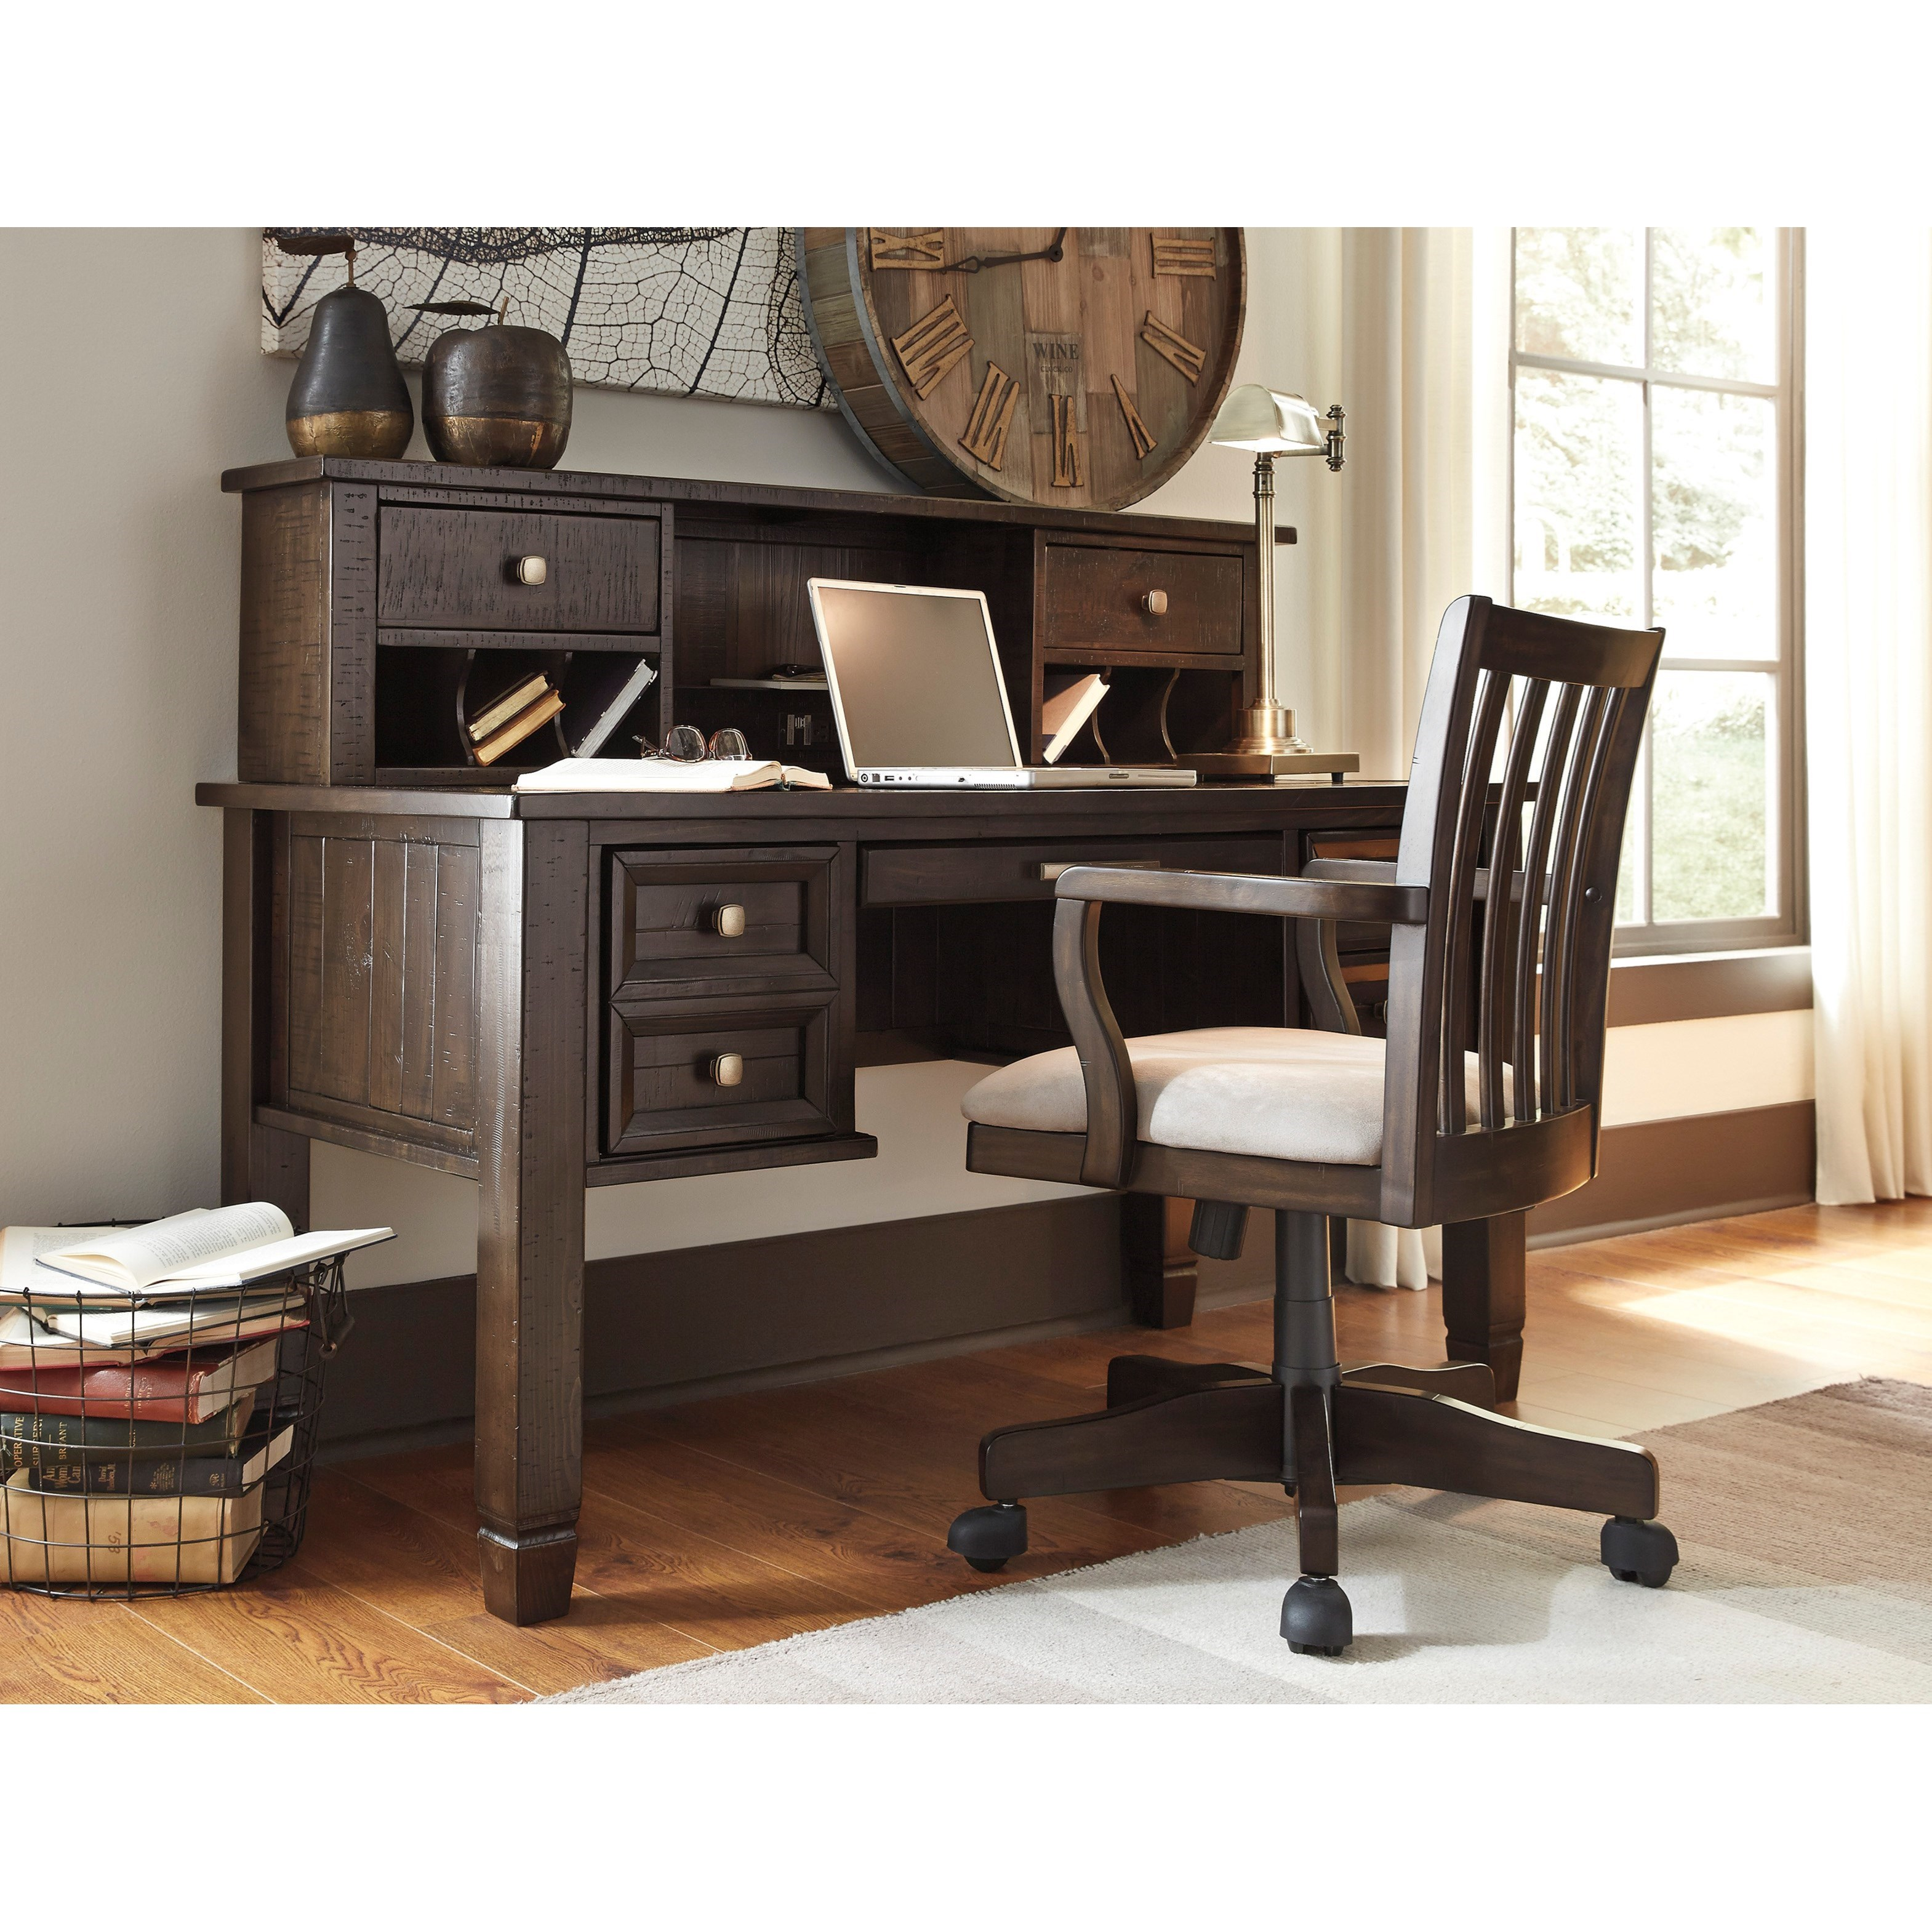 Ashley signature design townser home office swivel desk chair dunk bright furniture office - Ashley furniture office desk ...